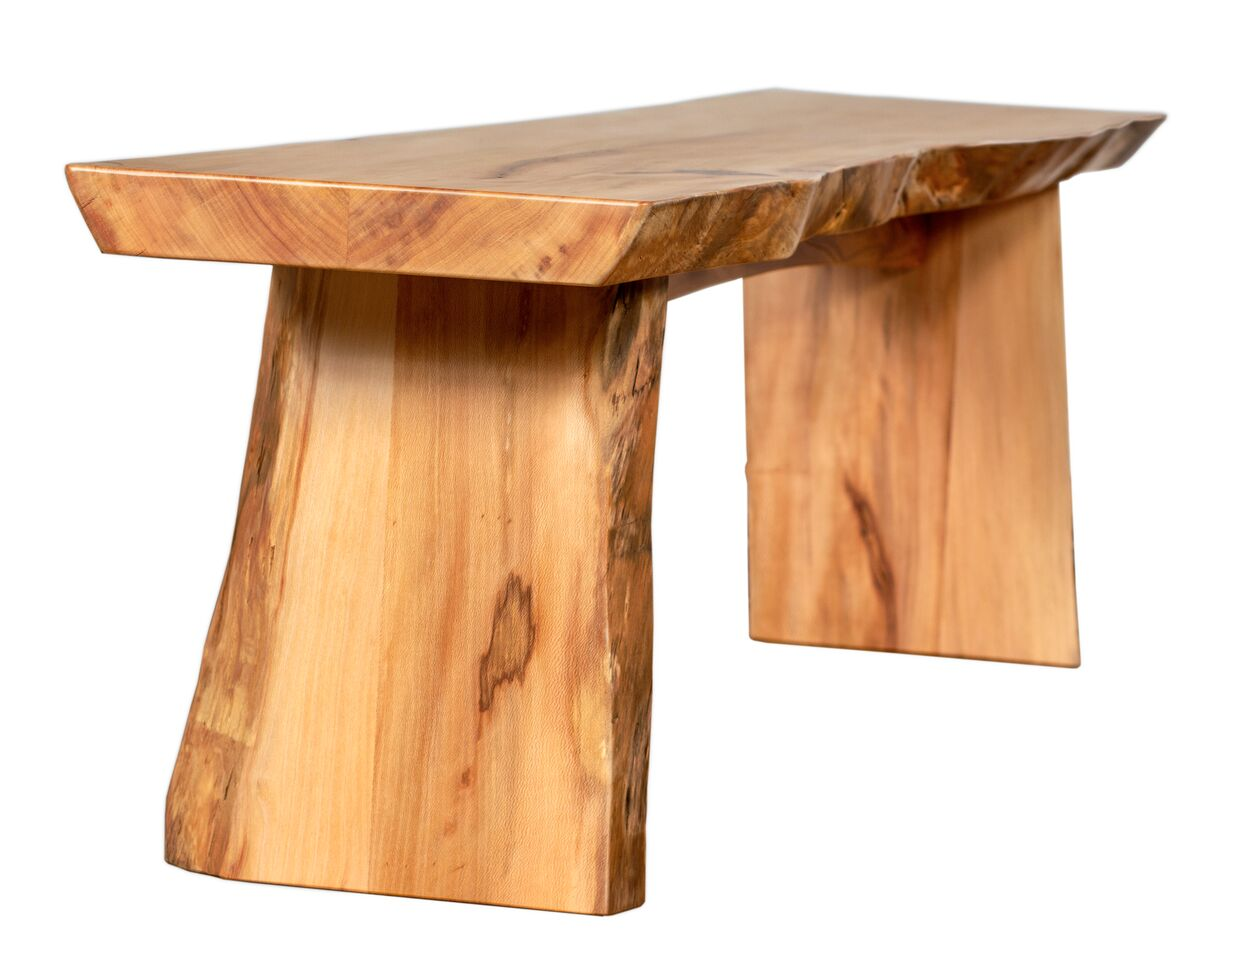 Miraculous Live Edge Sycamore Slab Bench Ibusinesslaw Wood Chair Design Ideas Ibusinesslaworg